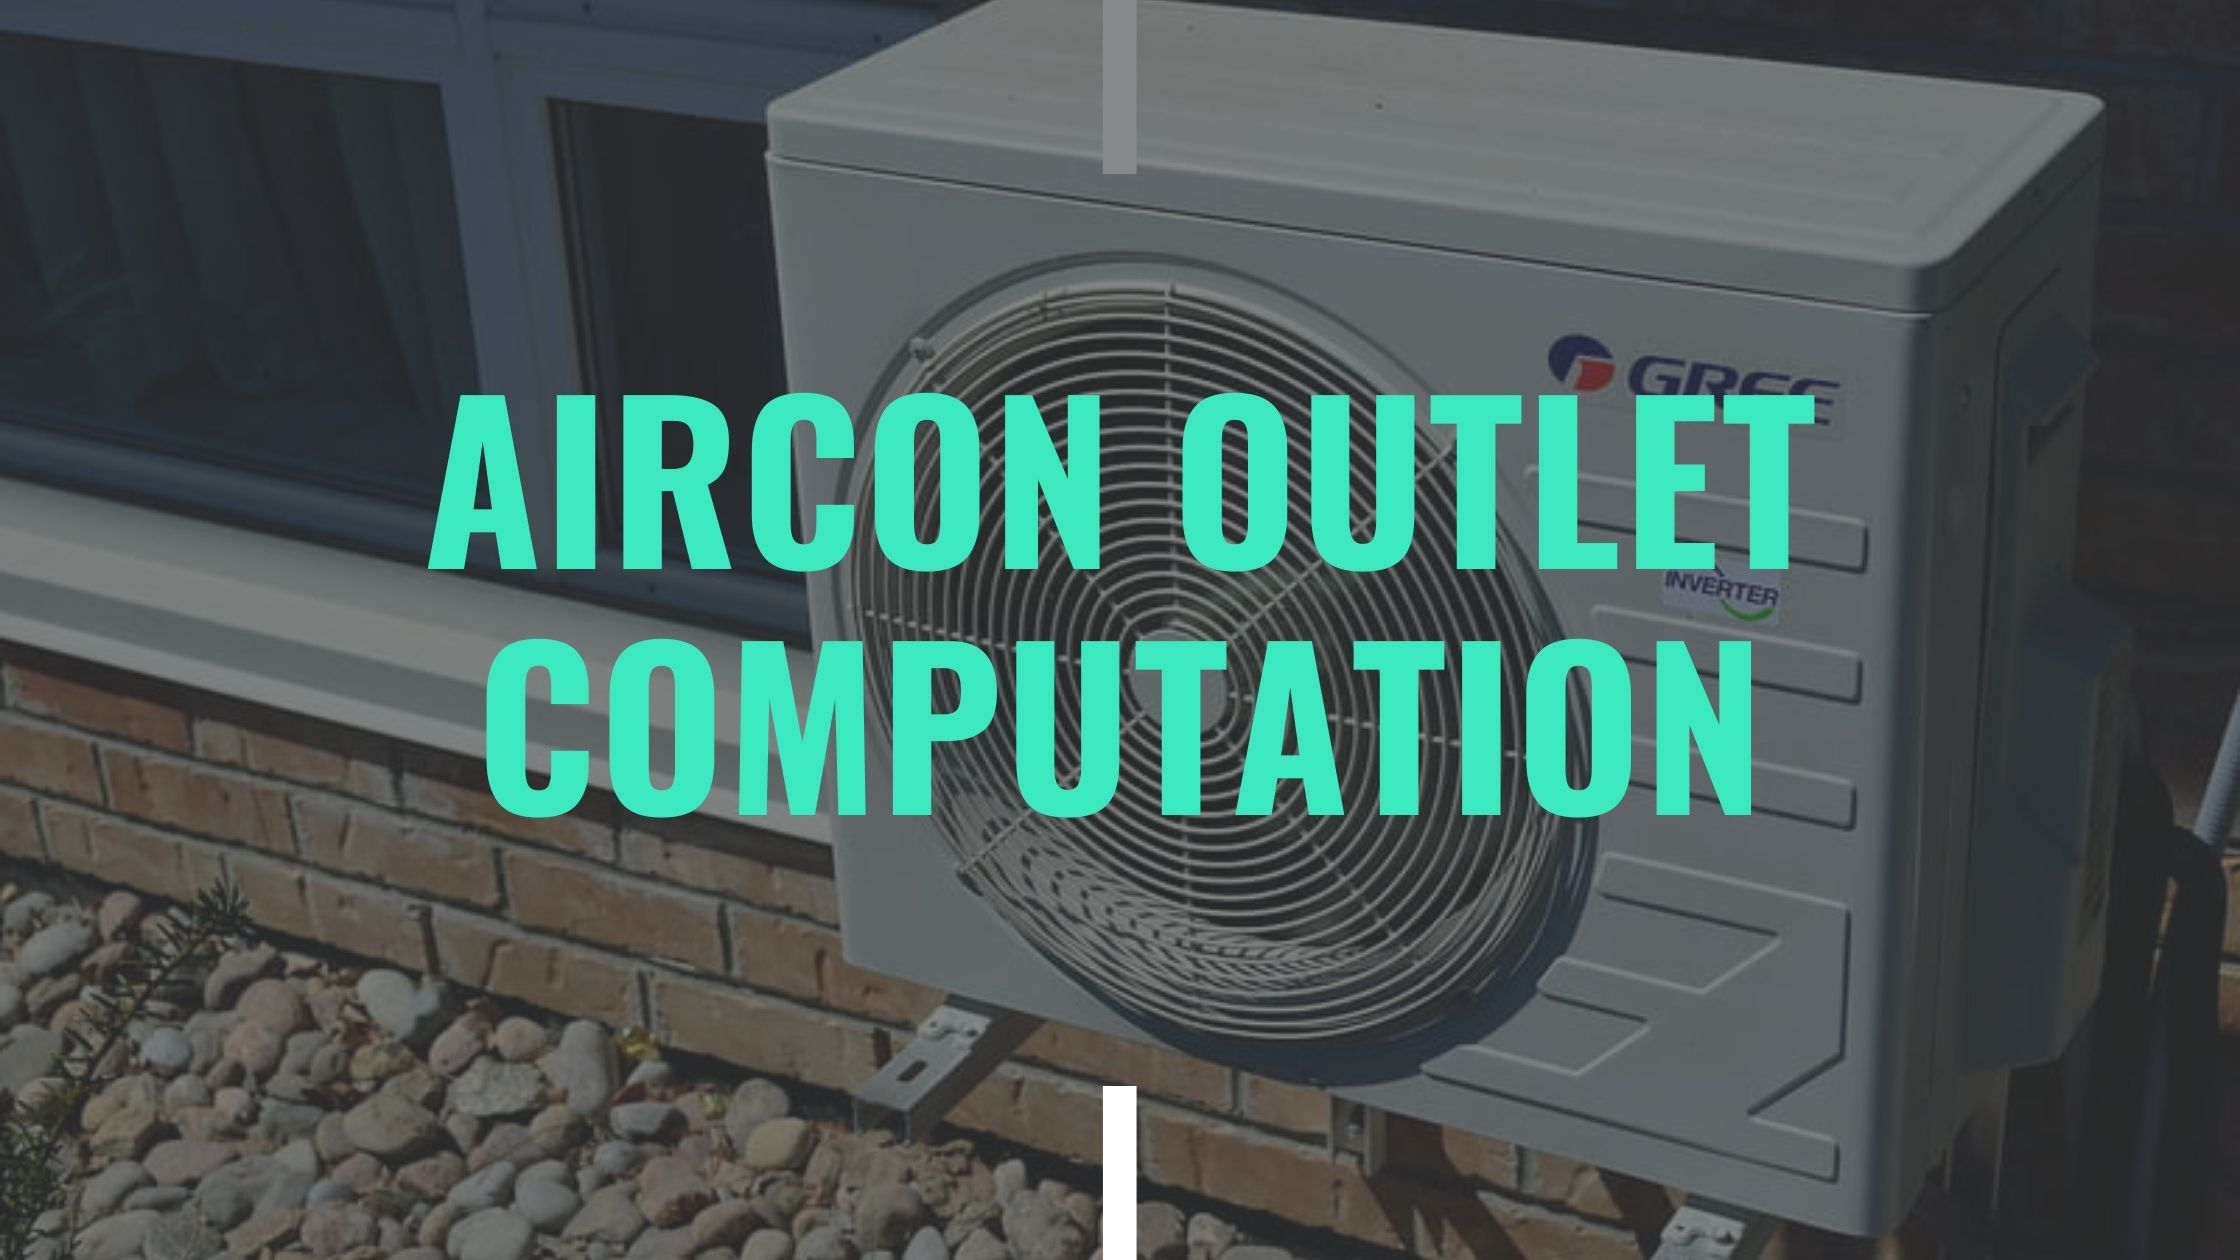 aircon outlet computation